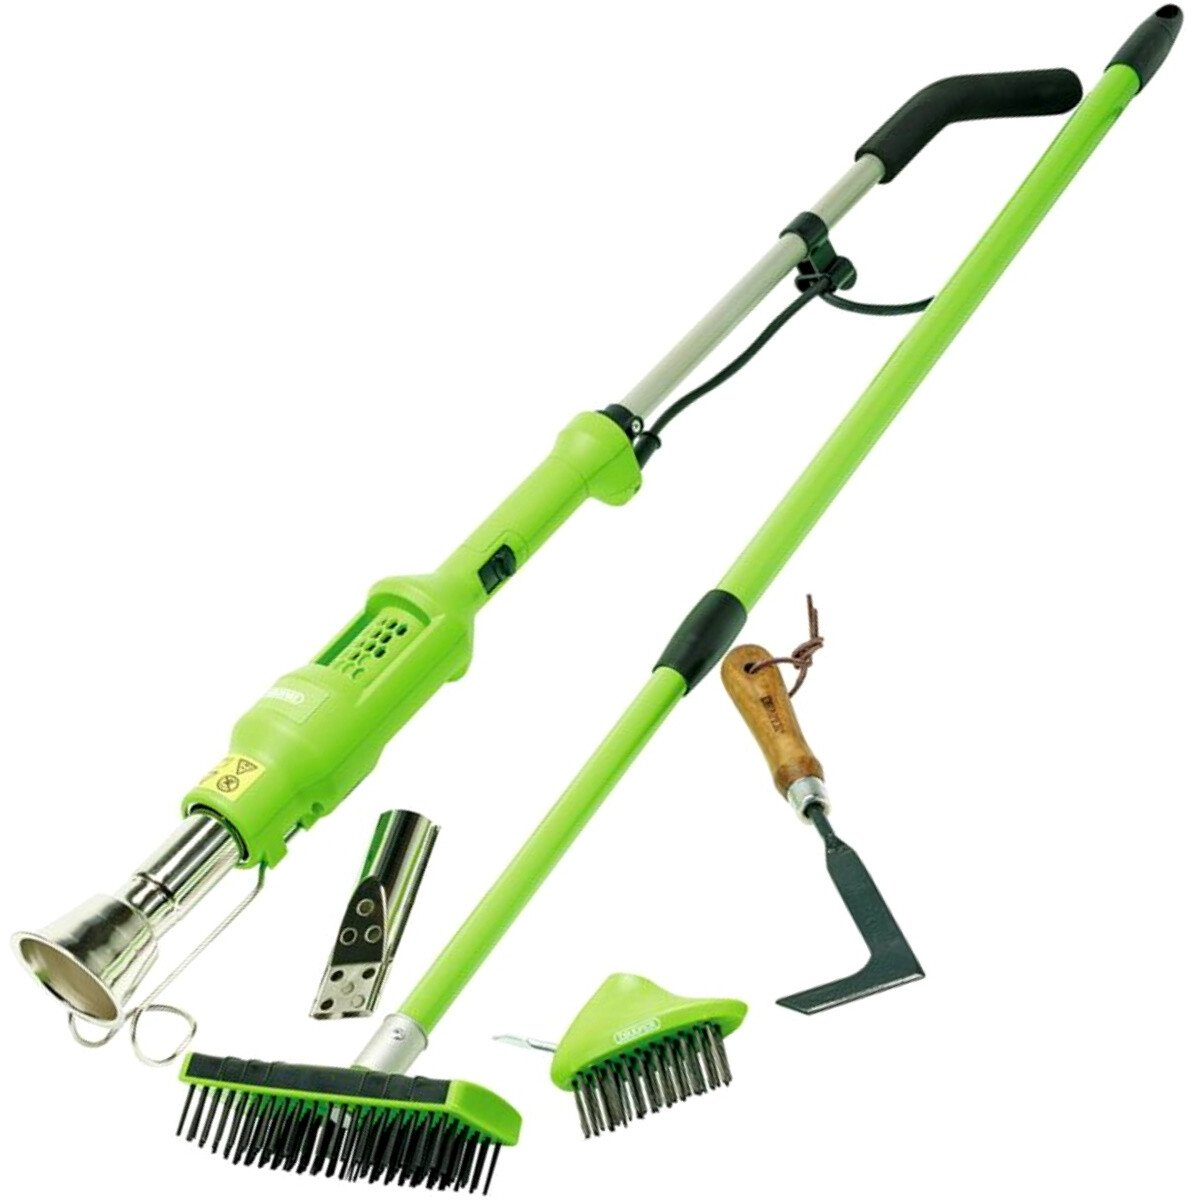 Draper 02607 *WBPBS Weed Burner 2000W, Paving Brush and Patio Hand Weeder 3 Piece Kit